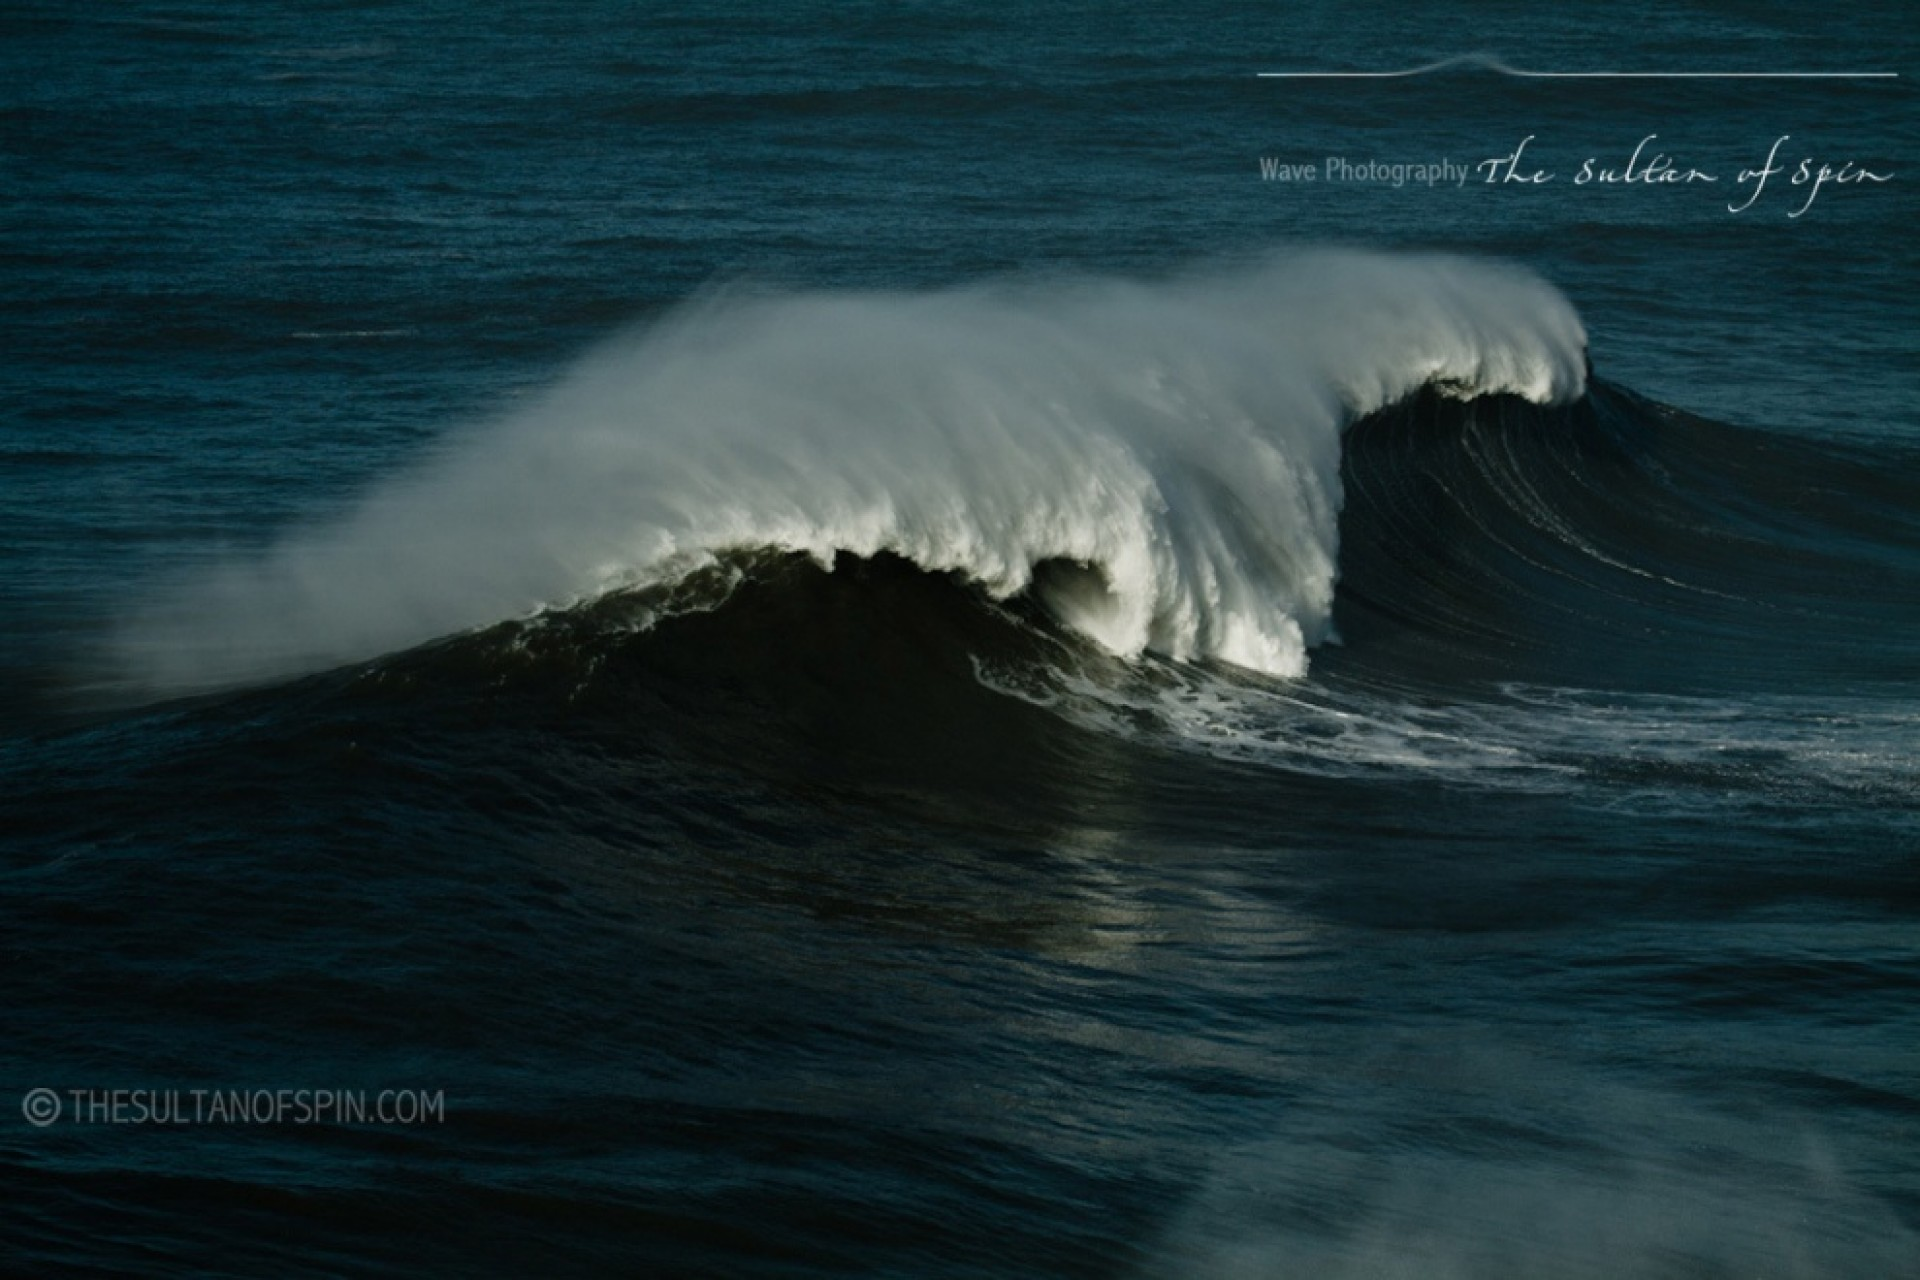 www.thesultanofspin.com's photo of Nazaré